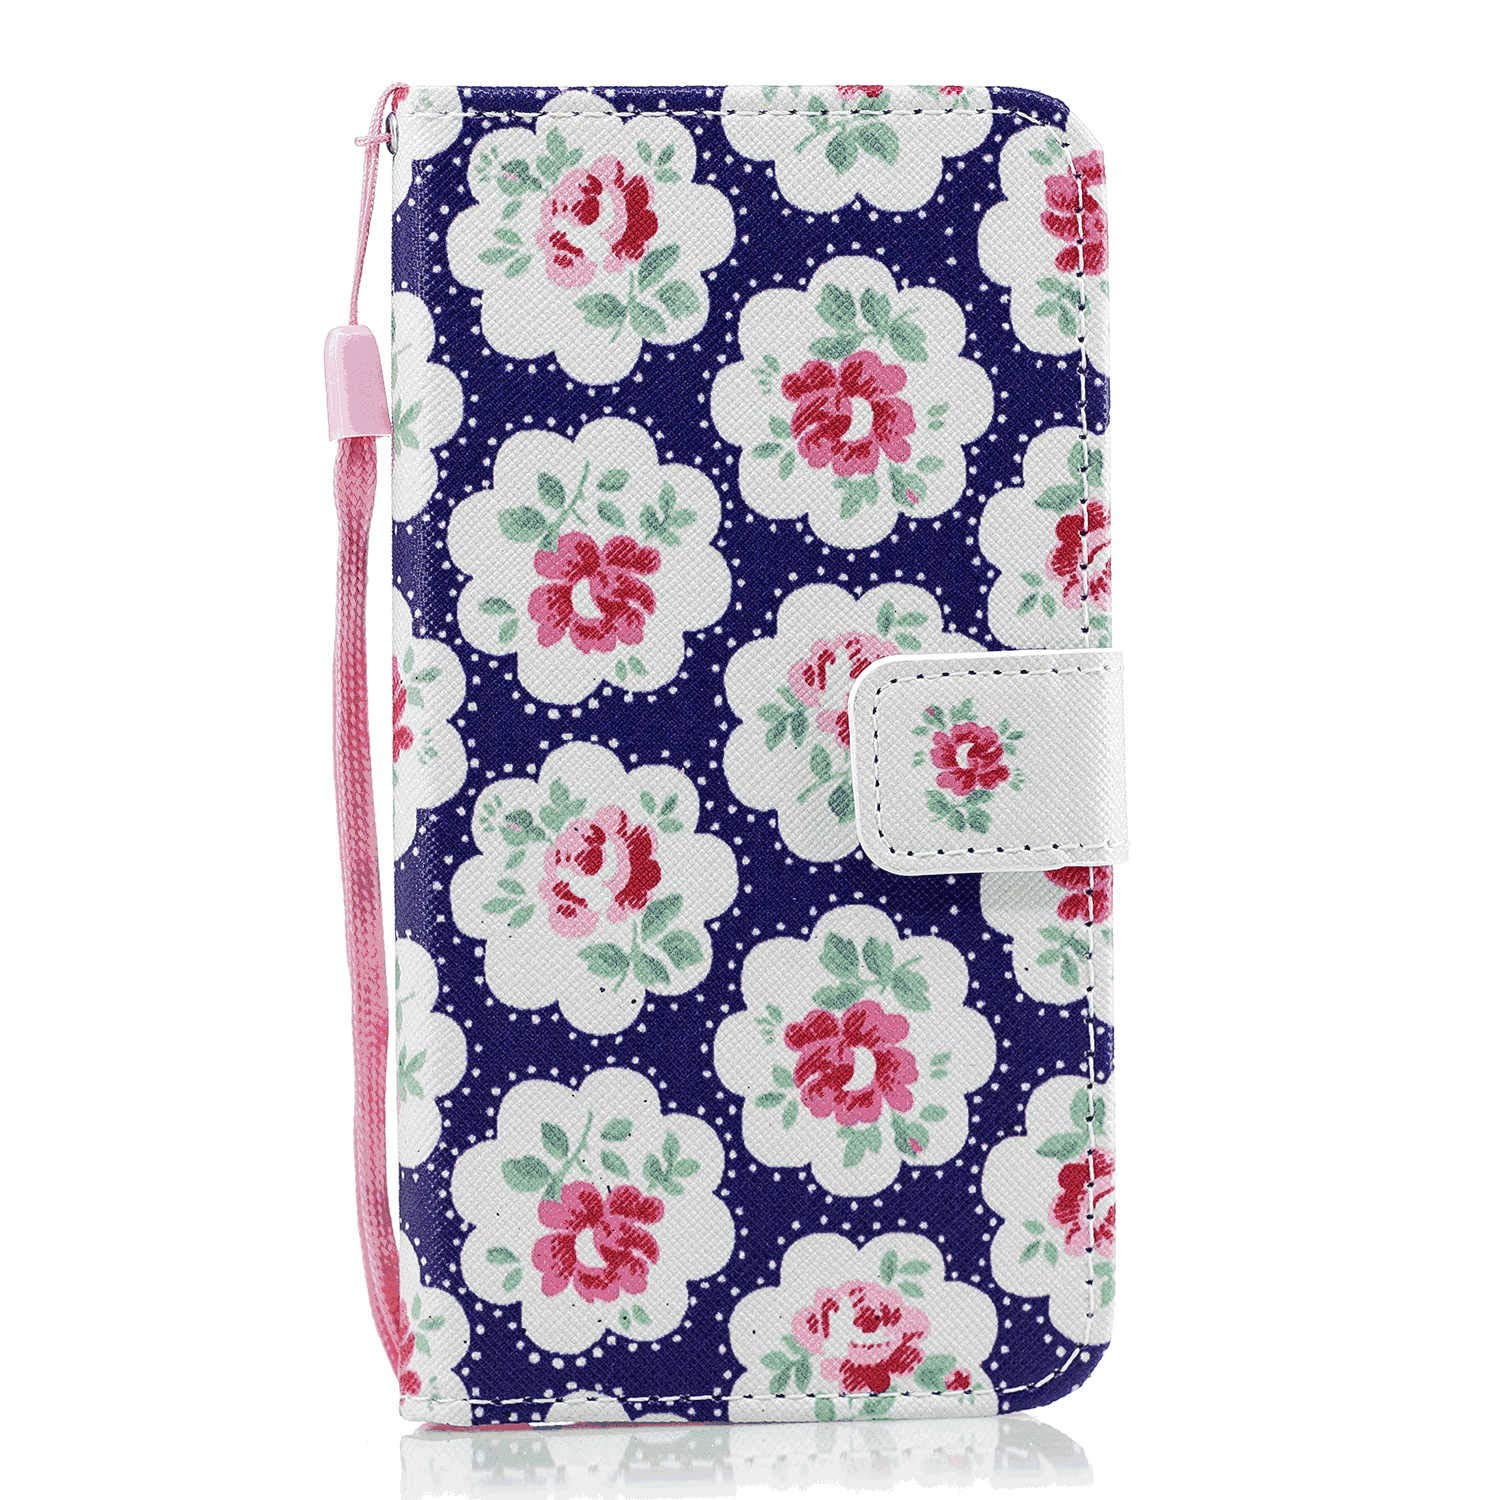 Huawei P20 Plus Flip Case Cover for Huawei P20 Plus Leather Extra-Durable Business Kickstand Mobile Phone Cover Card Holders with Free Waterproof-Bag Blue4